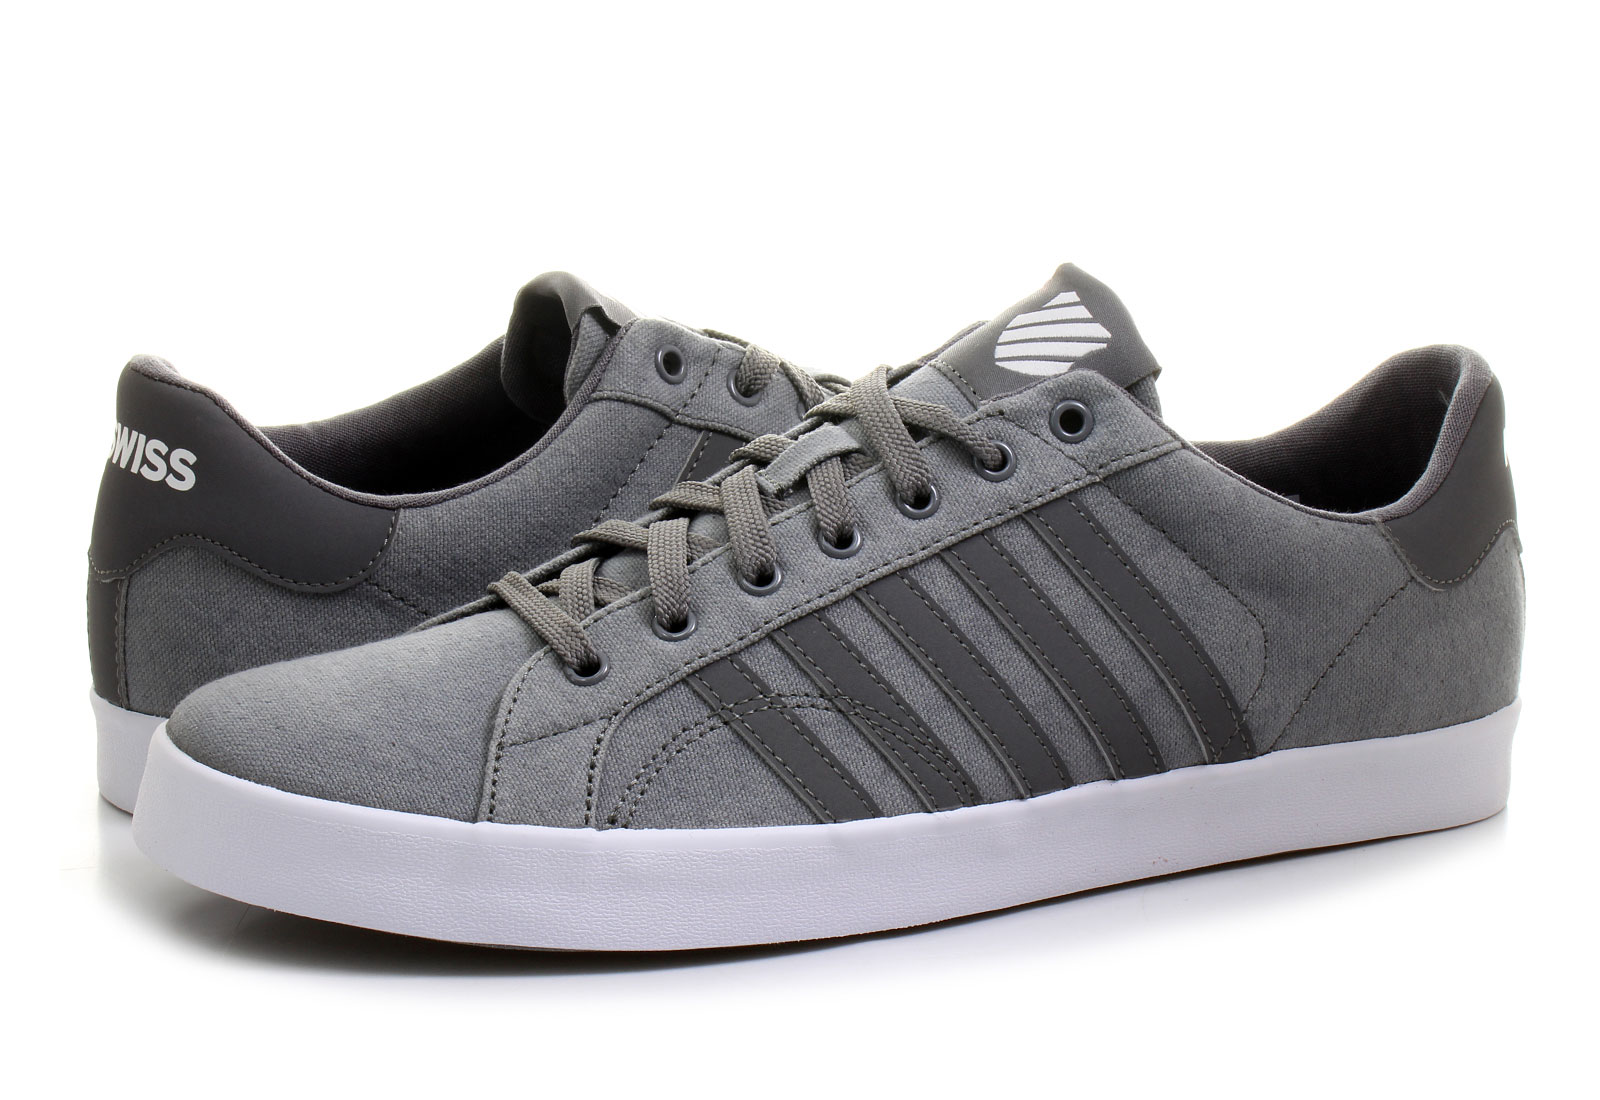 size 40 dcbbf c565d K-swiss Sneakers - Belmont So T Hvy Cvs - 03738-087-M - Online shop for  sneakers, shoes and boots